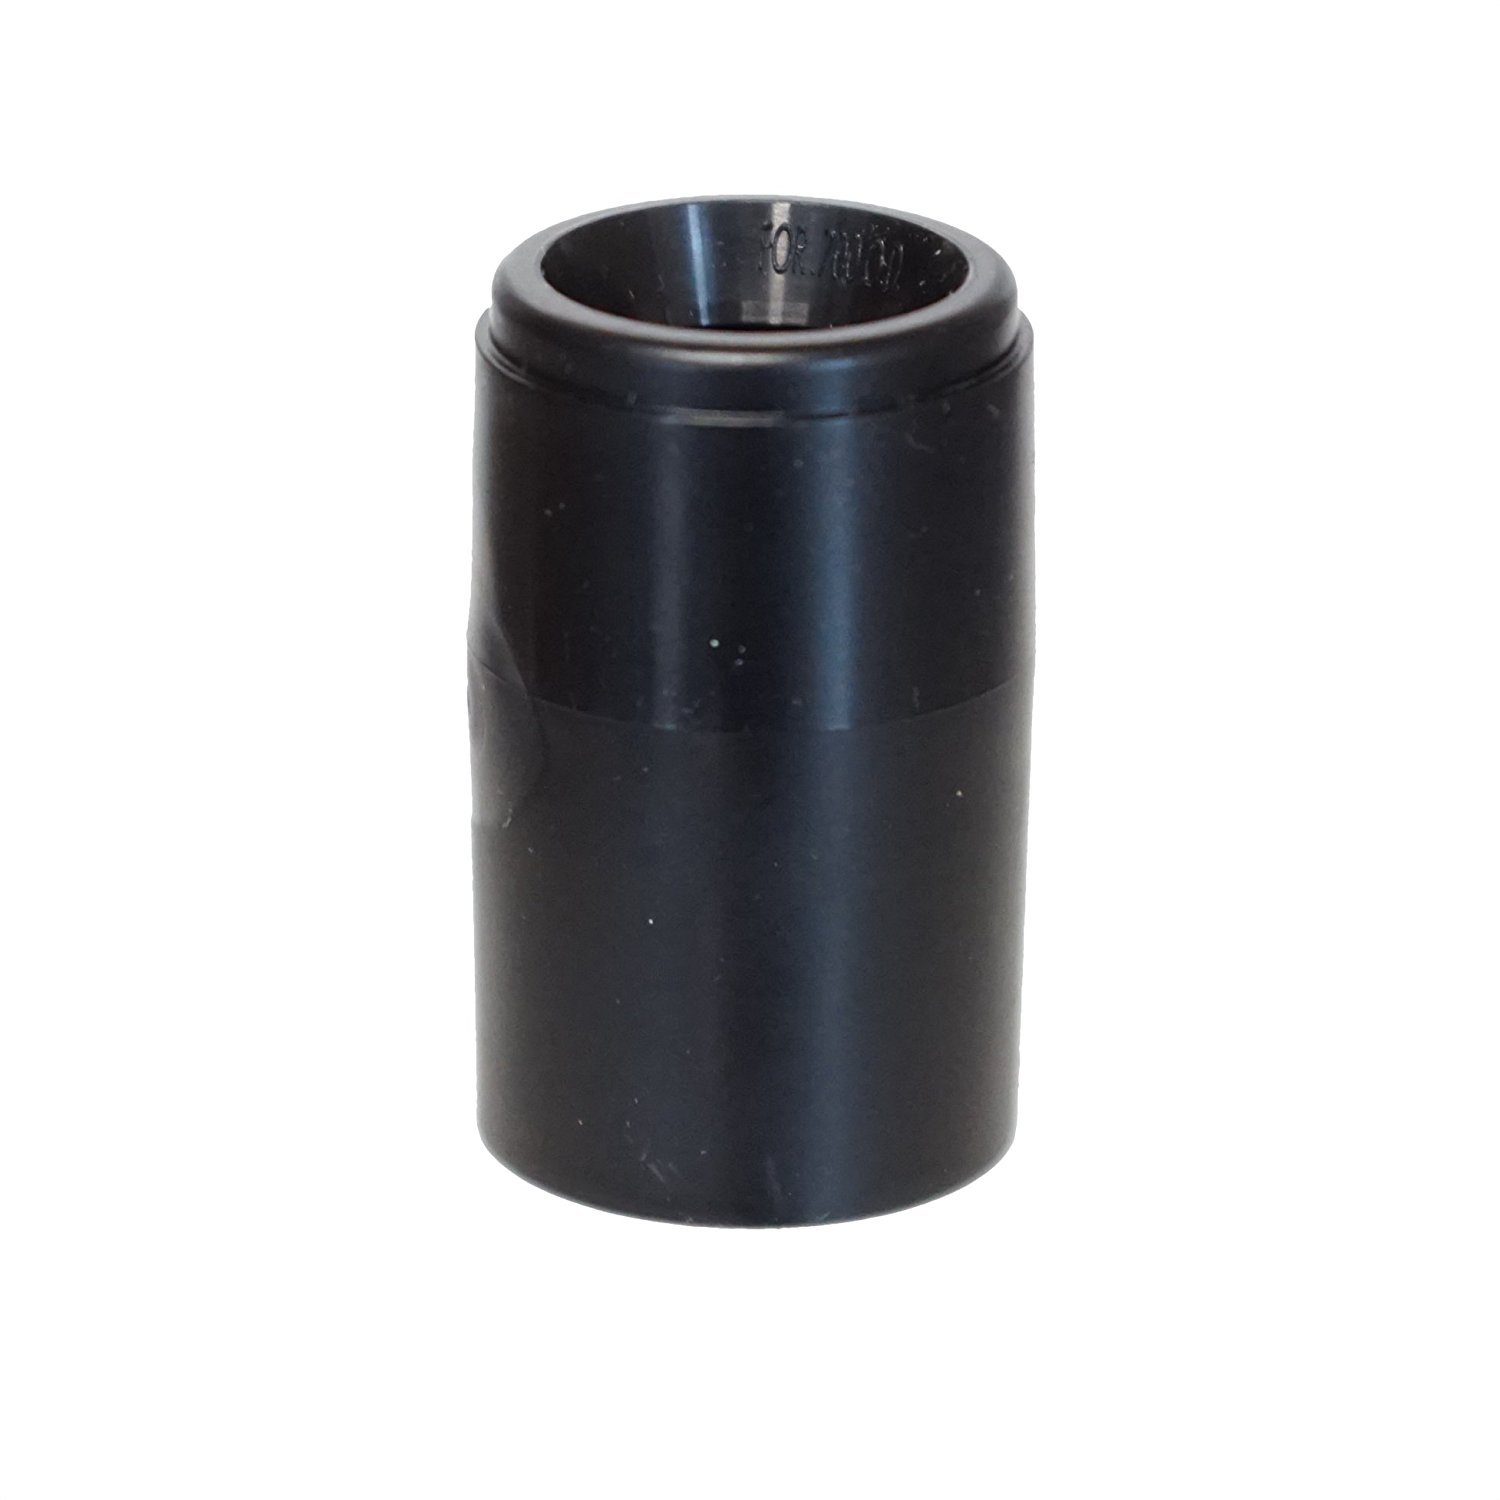 25-Pack - PVC To Poly Drip Irrigation Hydroponics Tubing Coupling Adapter - Connects 1/2' PVC to .700od Poly Tubing